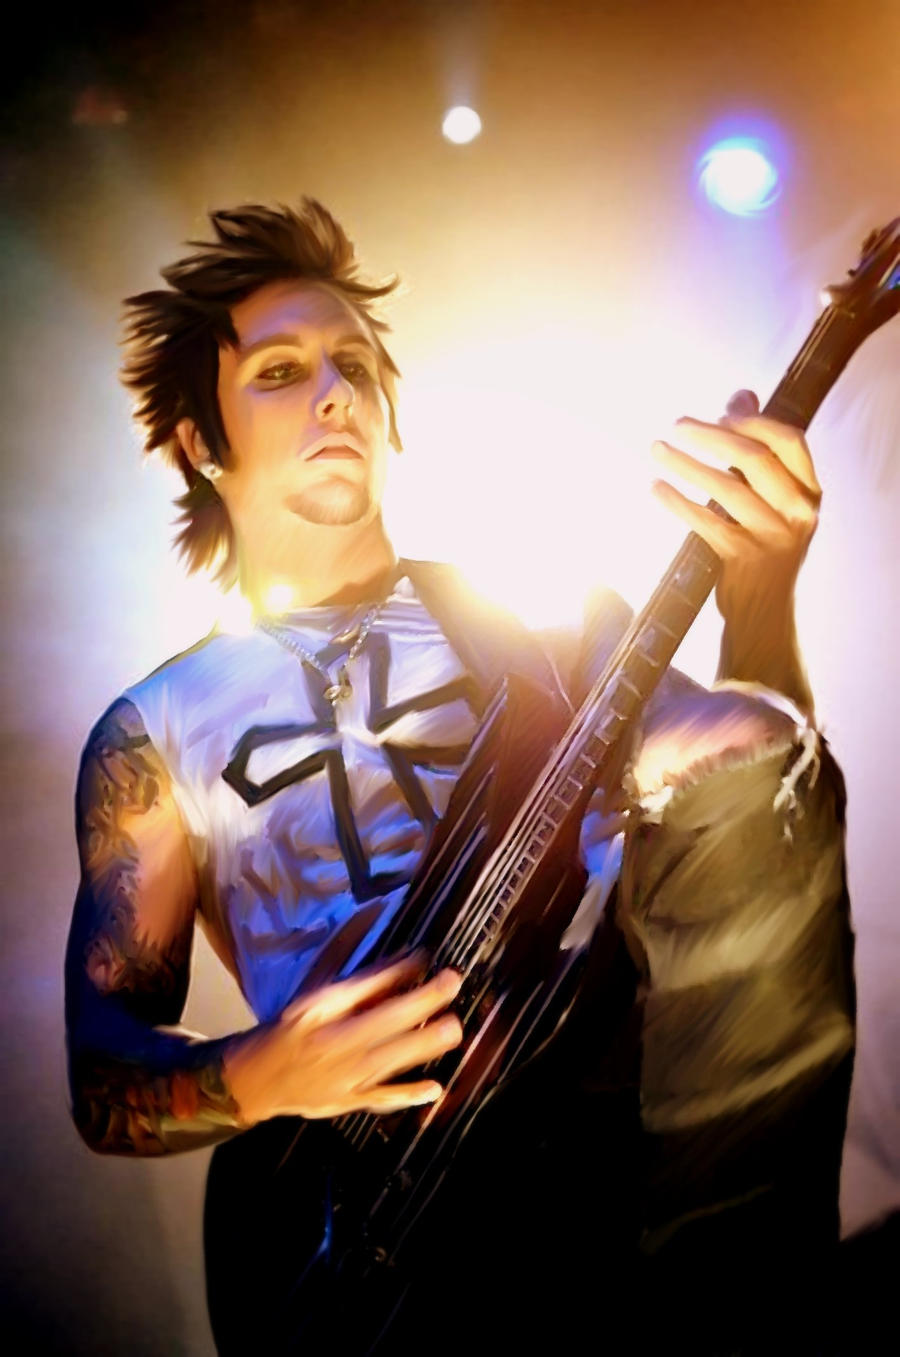 Synyster gates by chabiboy on deviantart